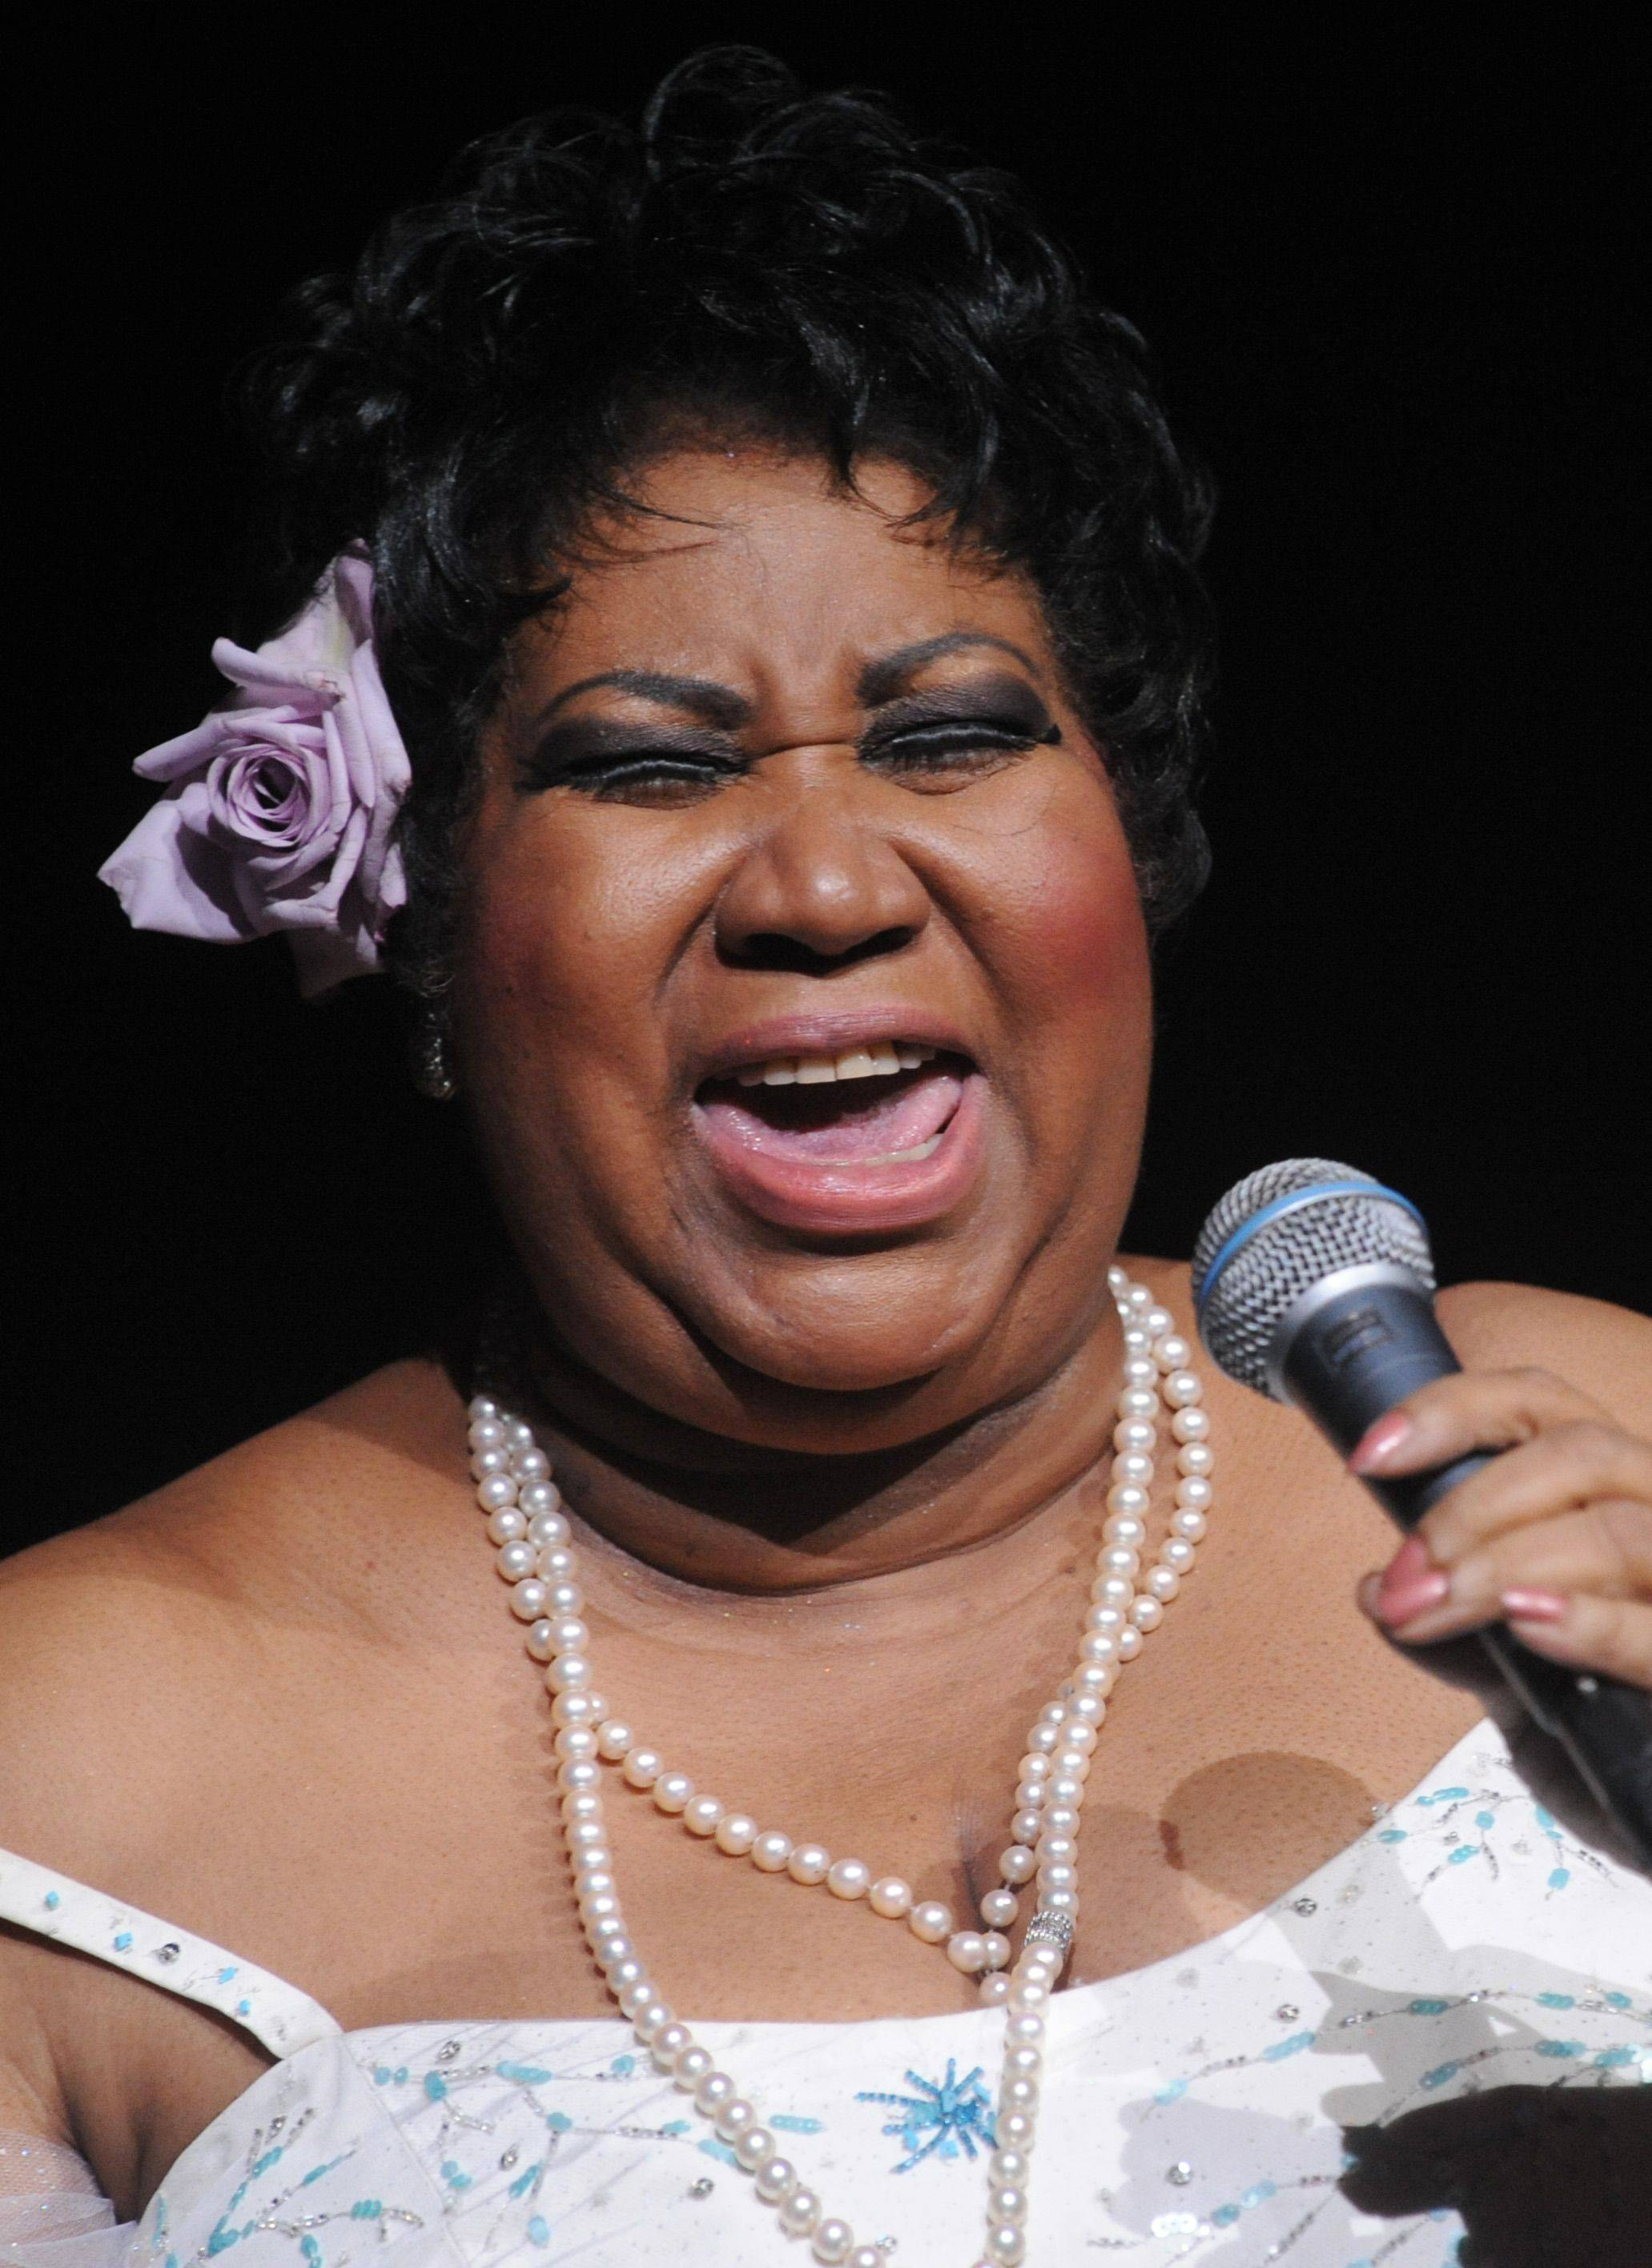 Aretha Franklin performs at Radio City Music Hall in New York, Friday, Mar. 21, 2008. The concert was the first of two sold-out shows.